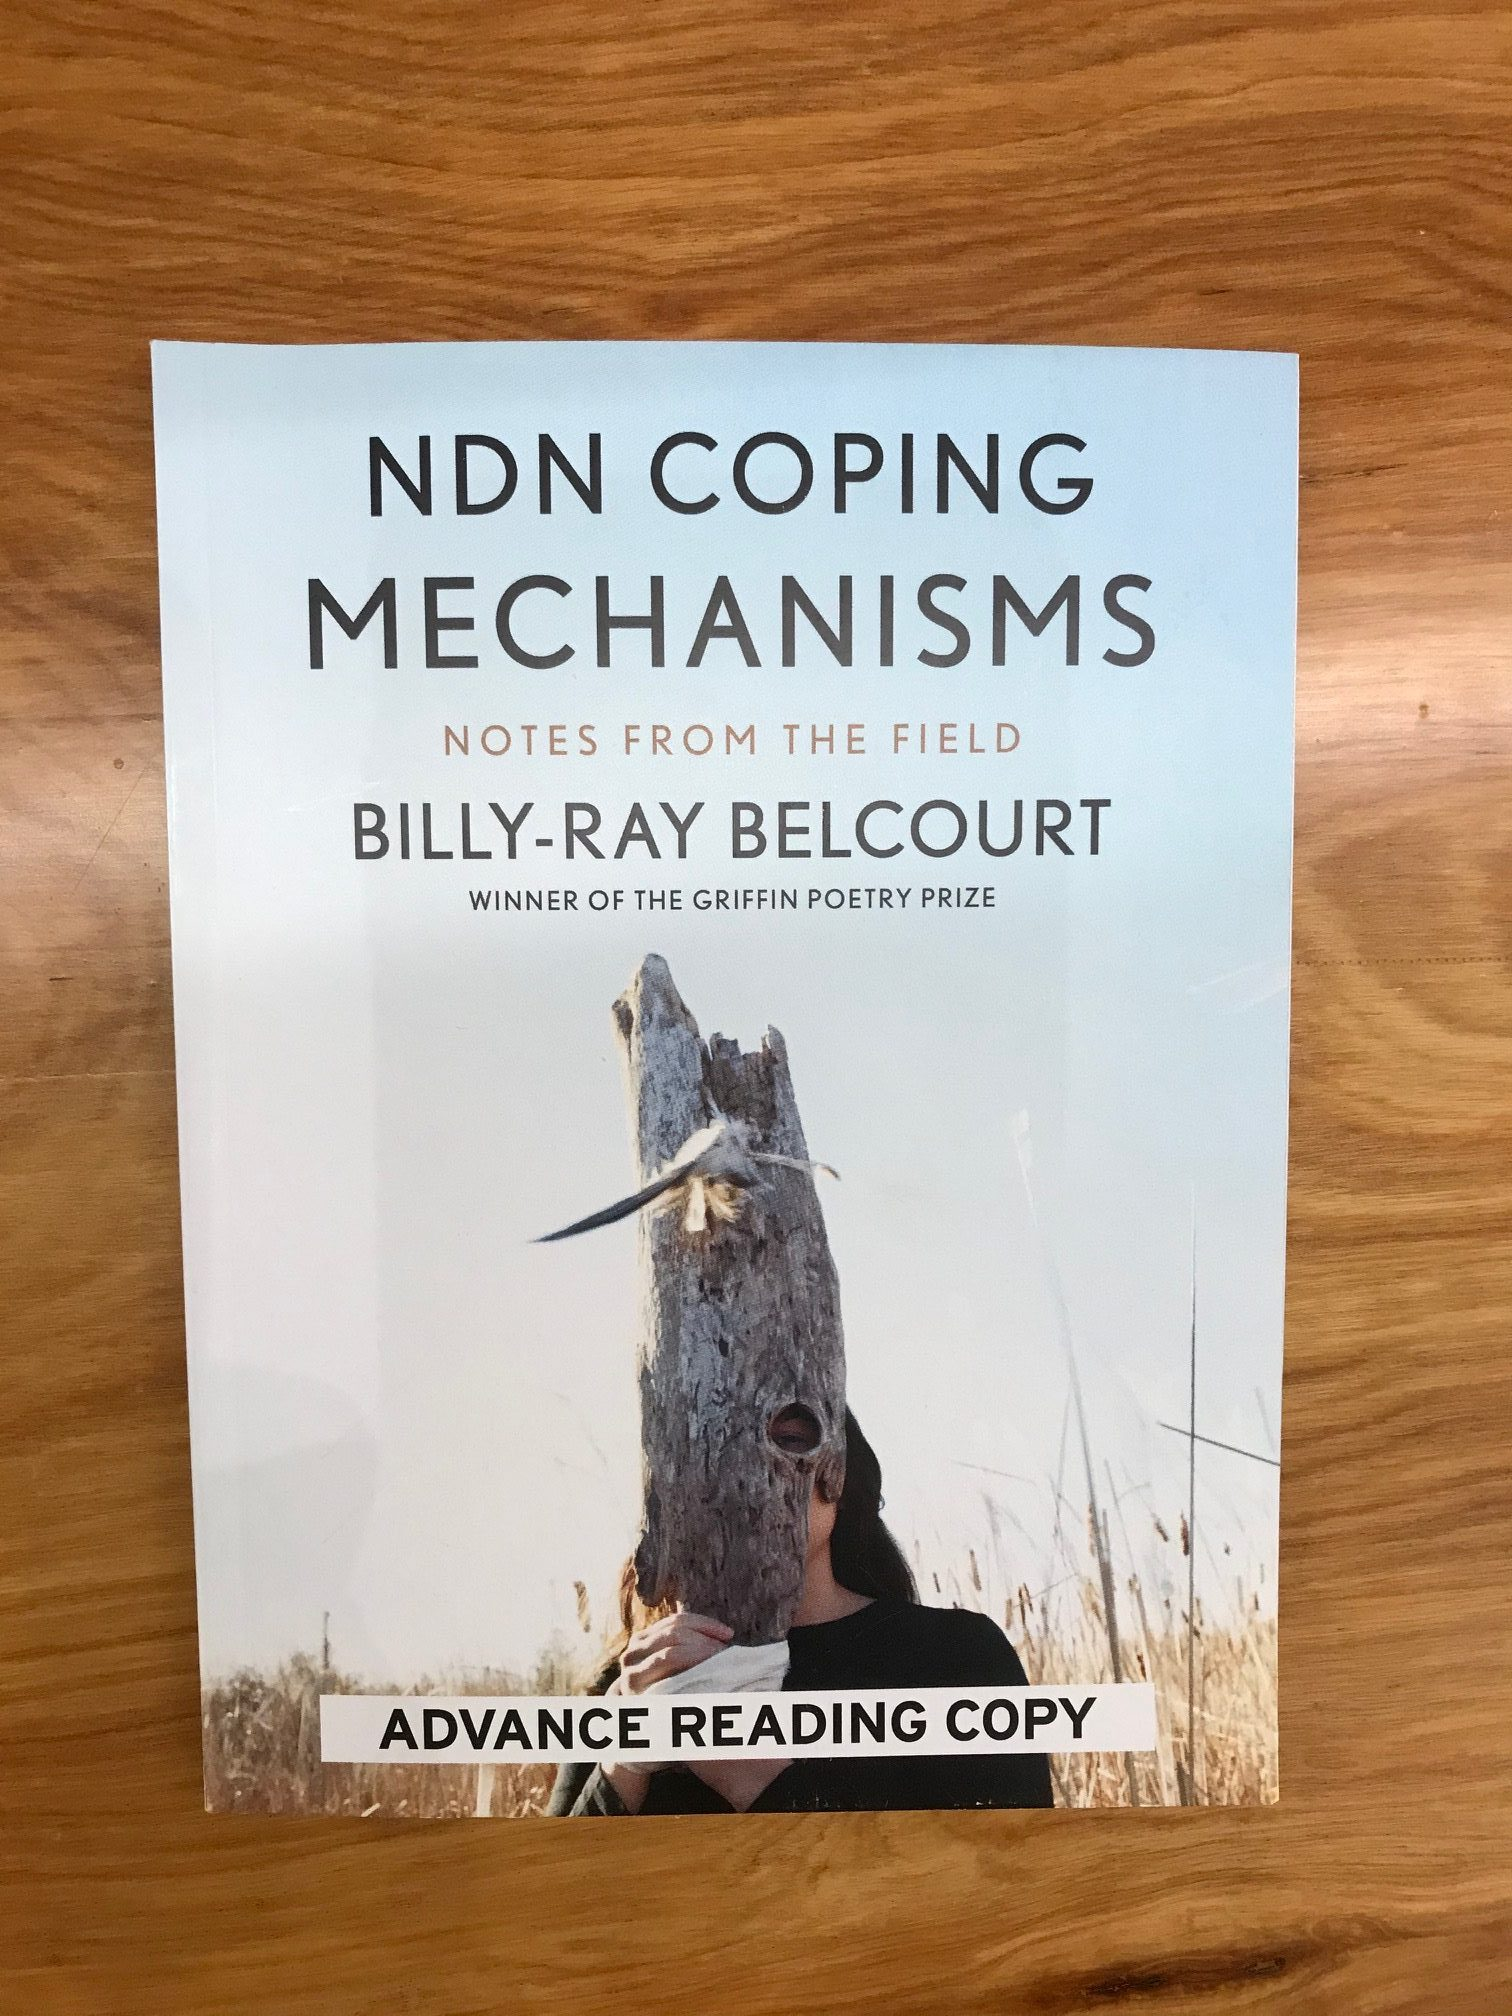 Book Review: NDN Coping Mechanisms by Billy-Ray Belcourt